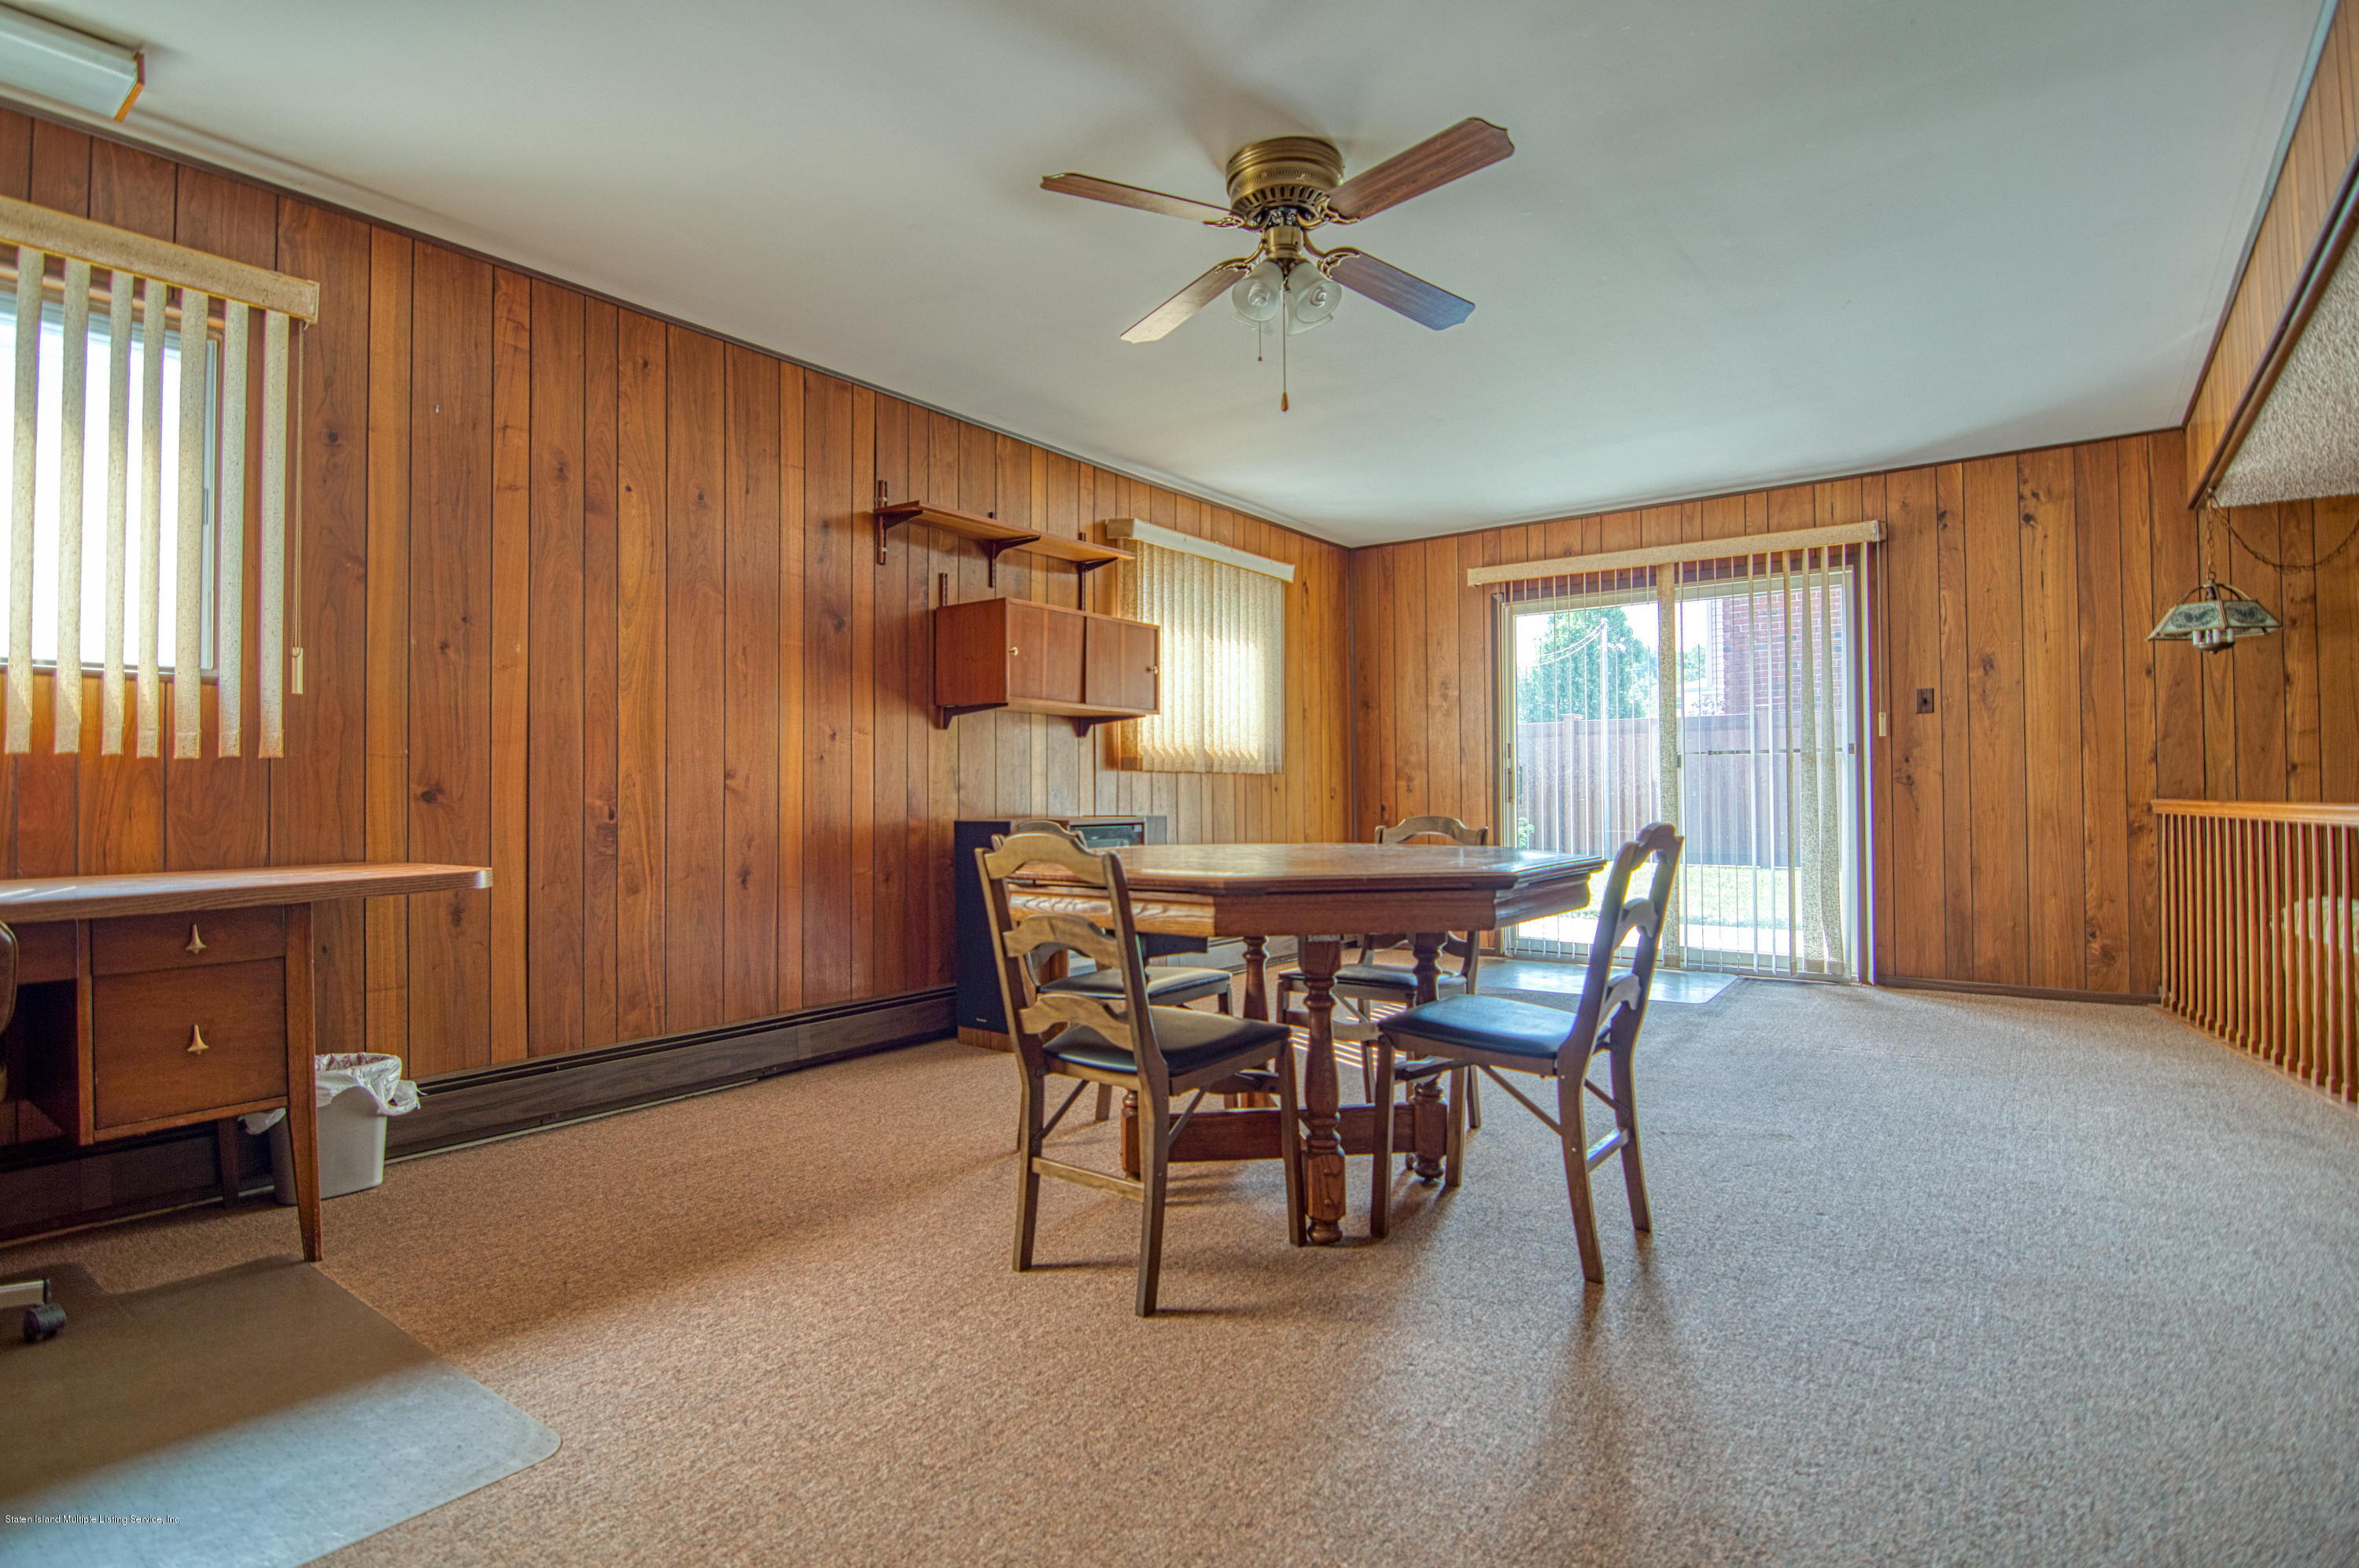 Single Family - Detached 124 Queen Street  Staten Island, NY 10314, MLS-1131413-8